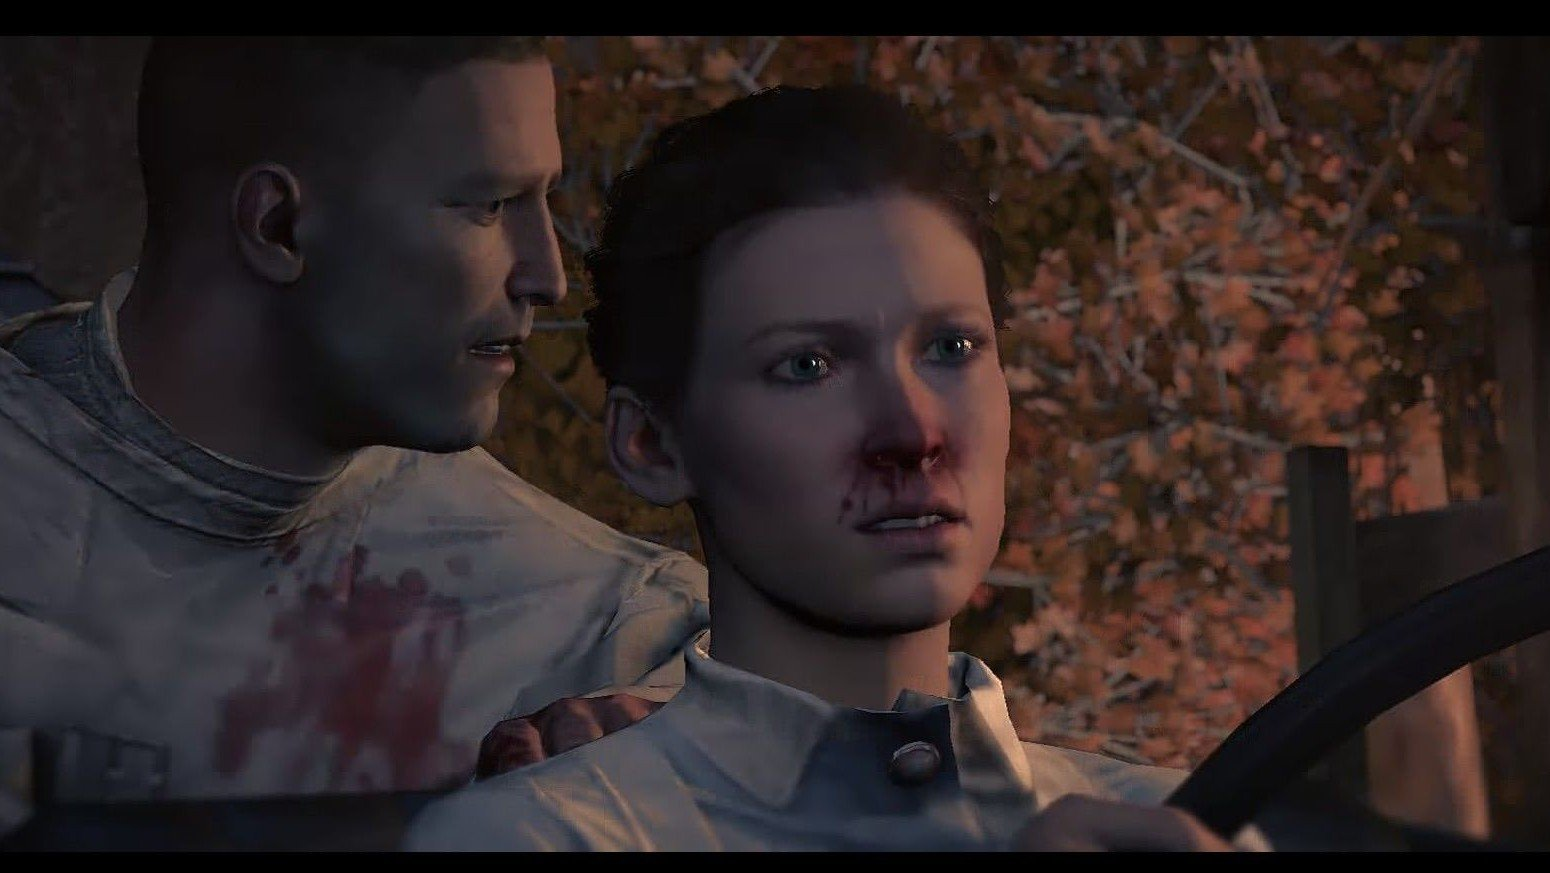 695861-wolfenstein-the-new-order-windows-screenshot-the-woman-is-e1443032413890